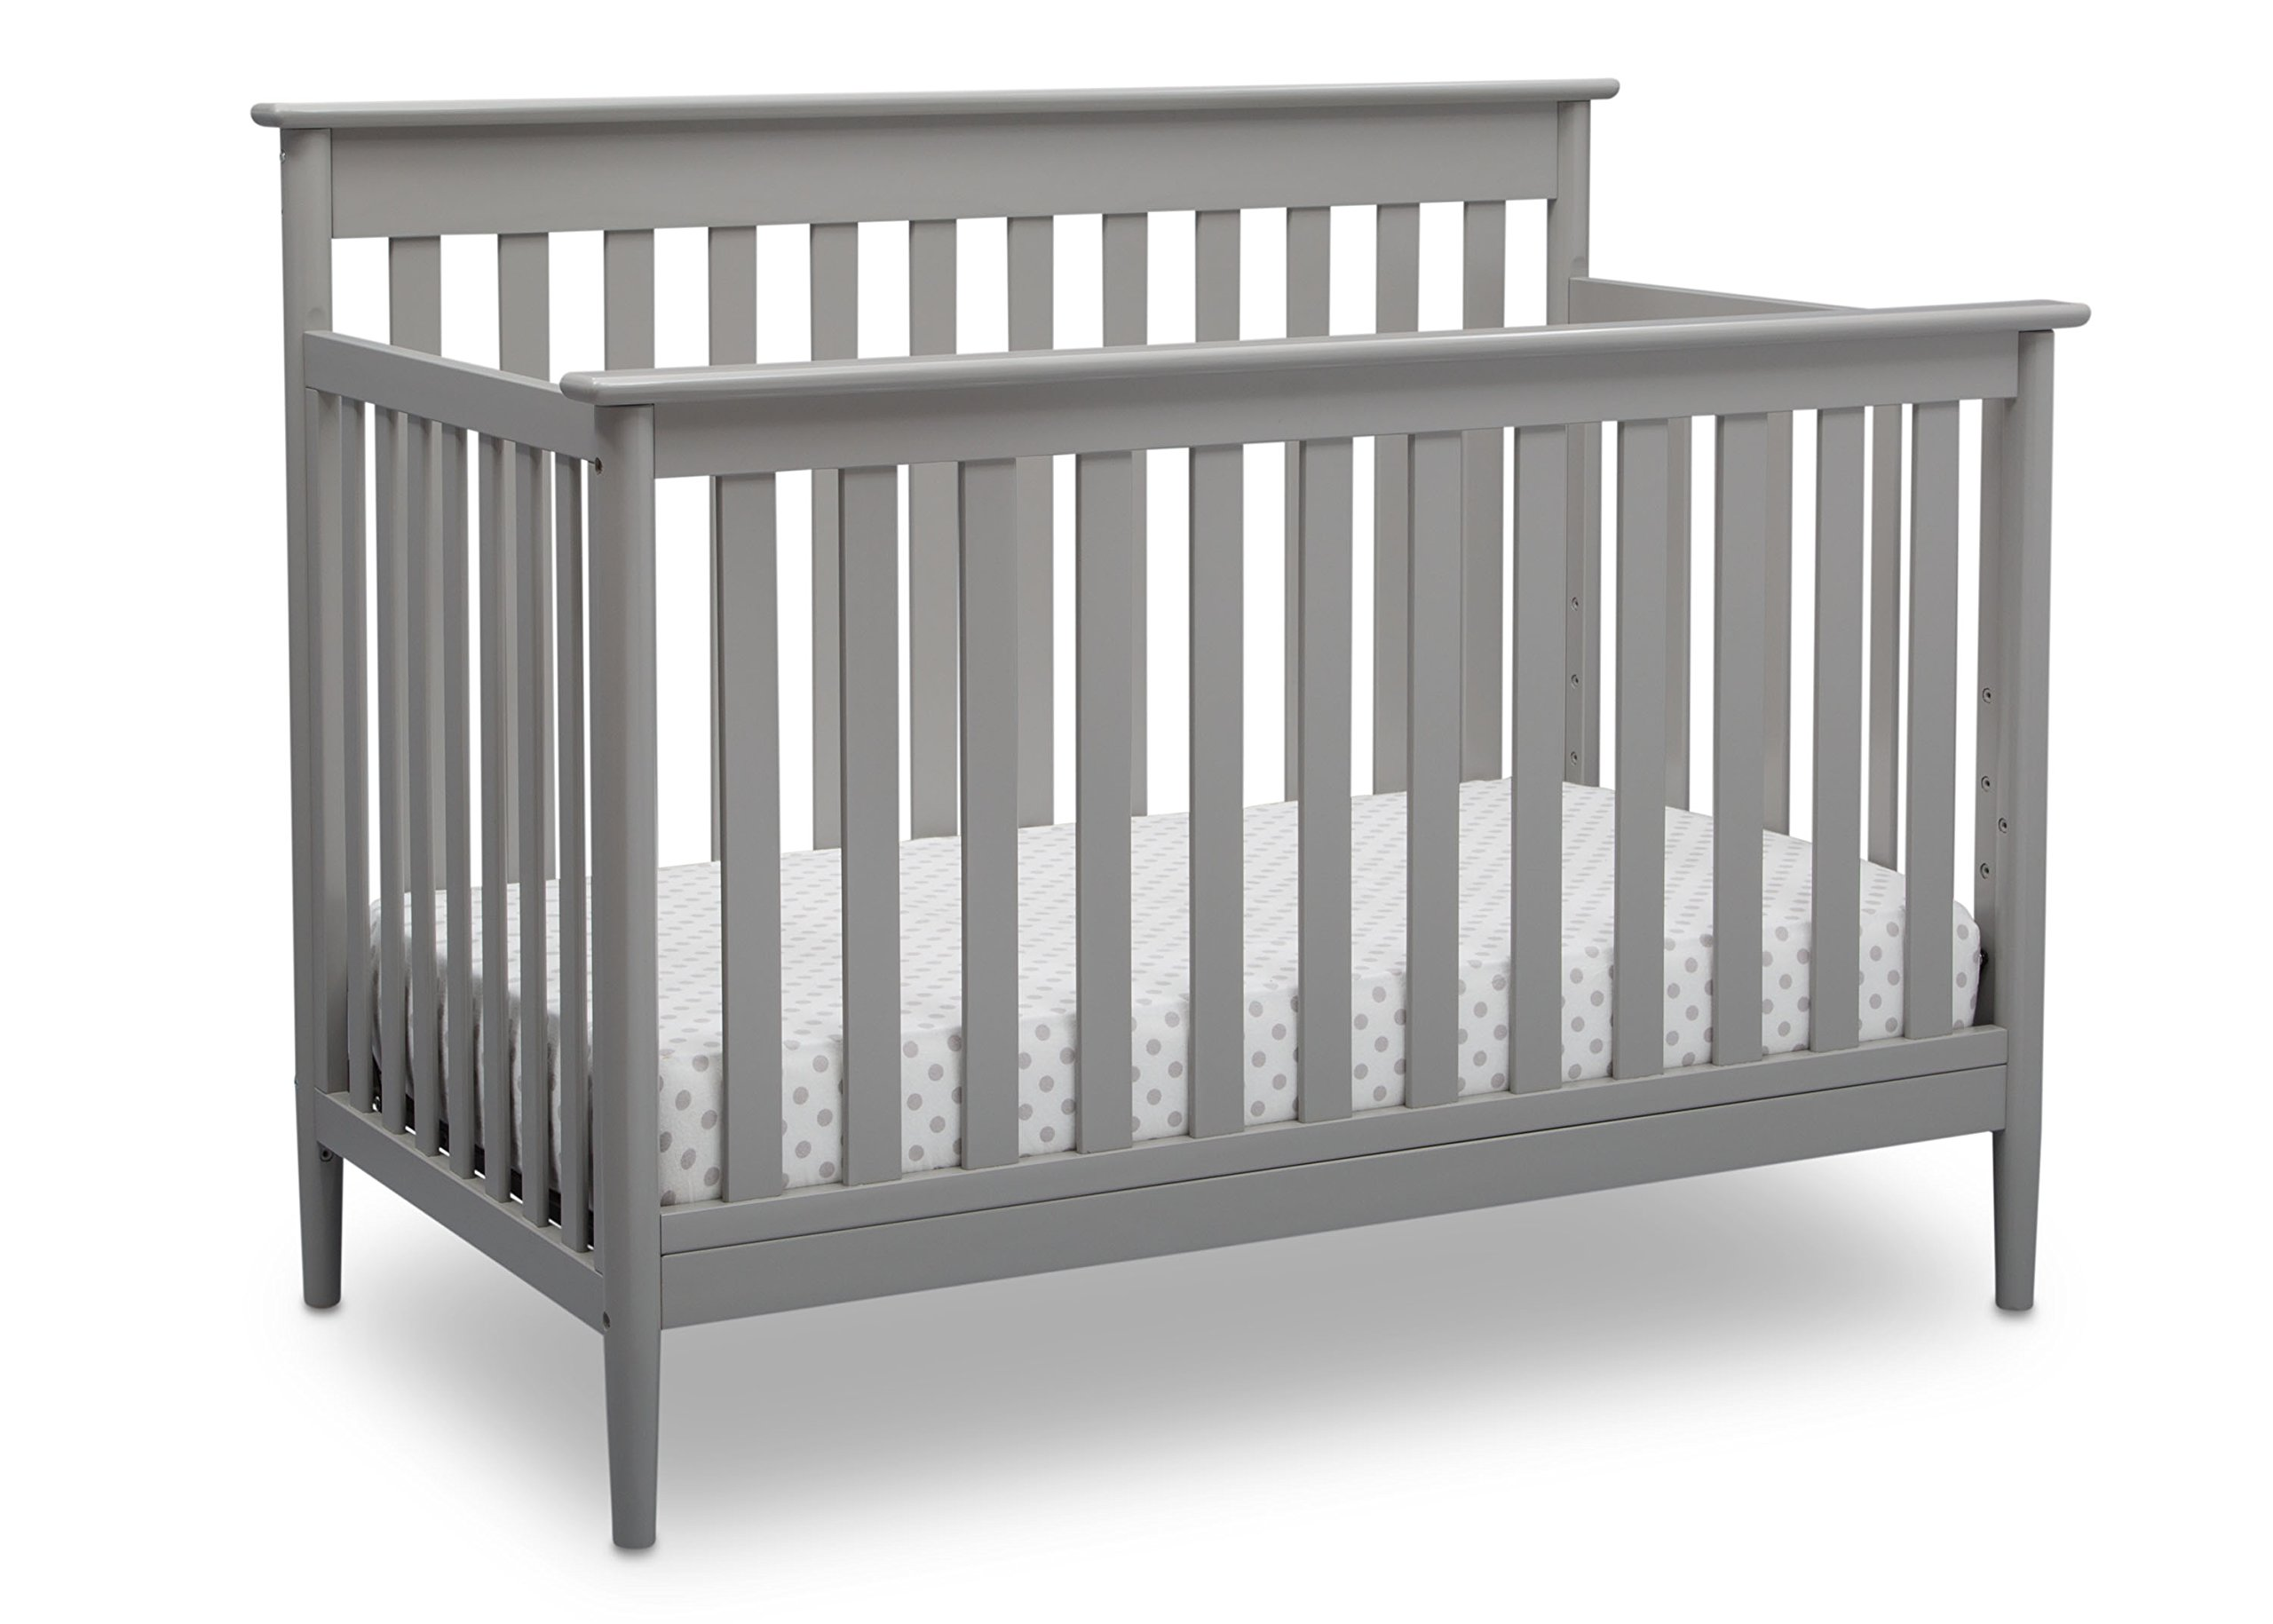 Delta Children Greyson Signature 4-in-1 Convertible Baby Crib, Grey